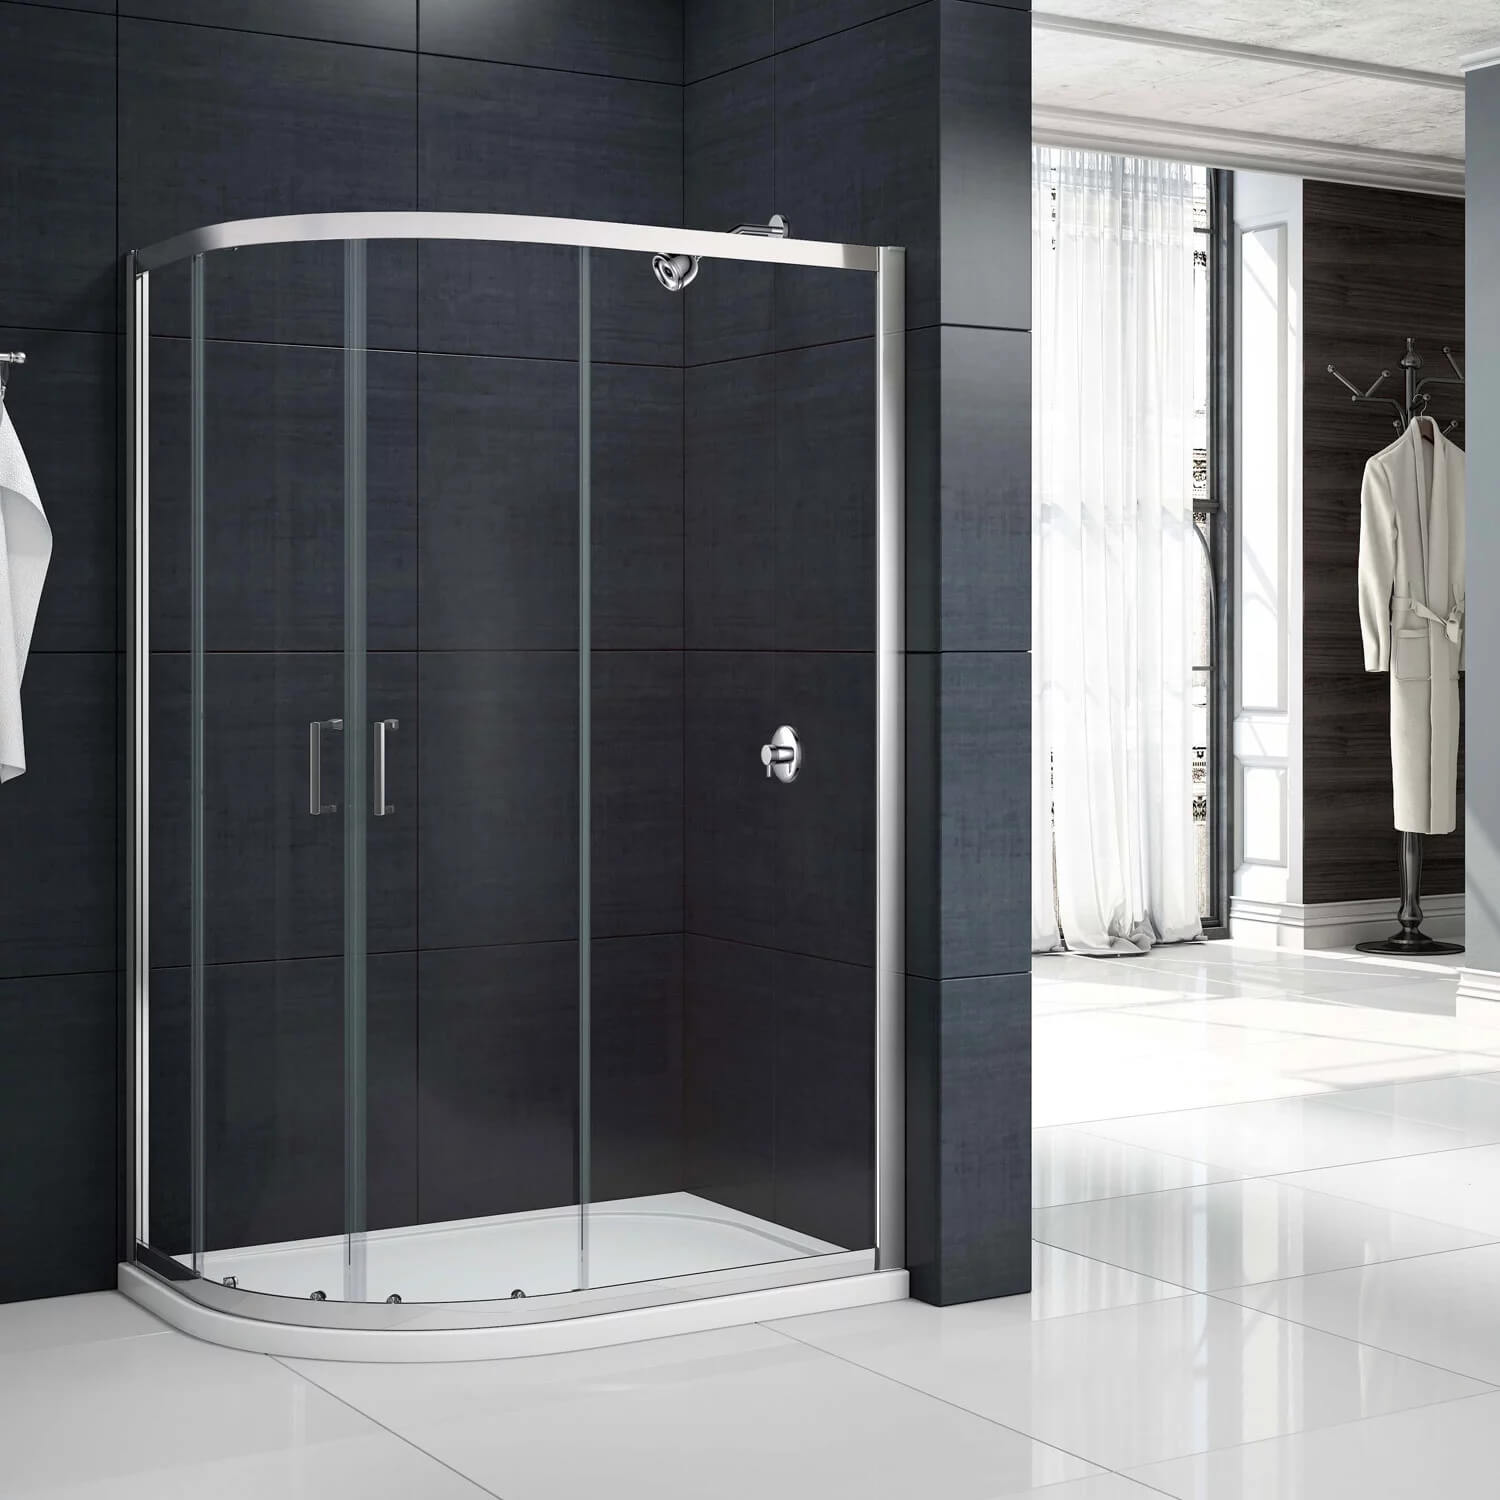 Merlyn Mbox 2 Door Offset Quadrant 1900mm Height Shower